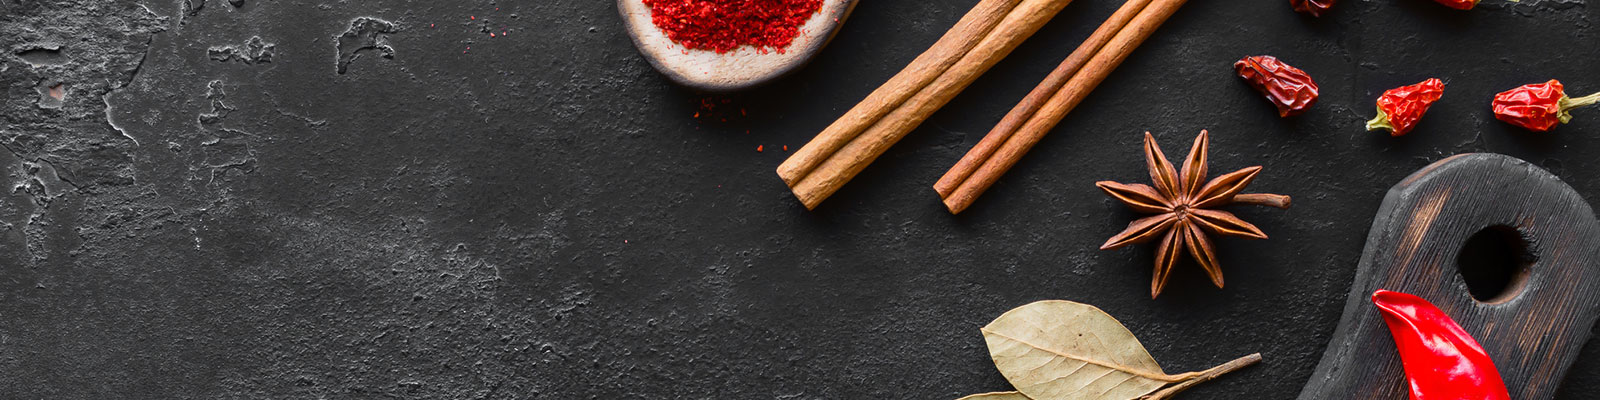 Spices and red pepper on cutting board